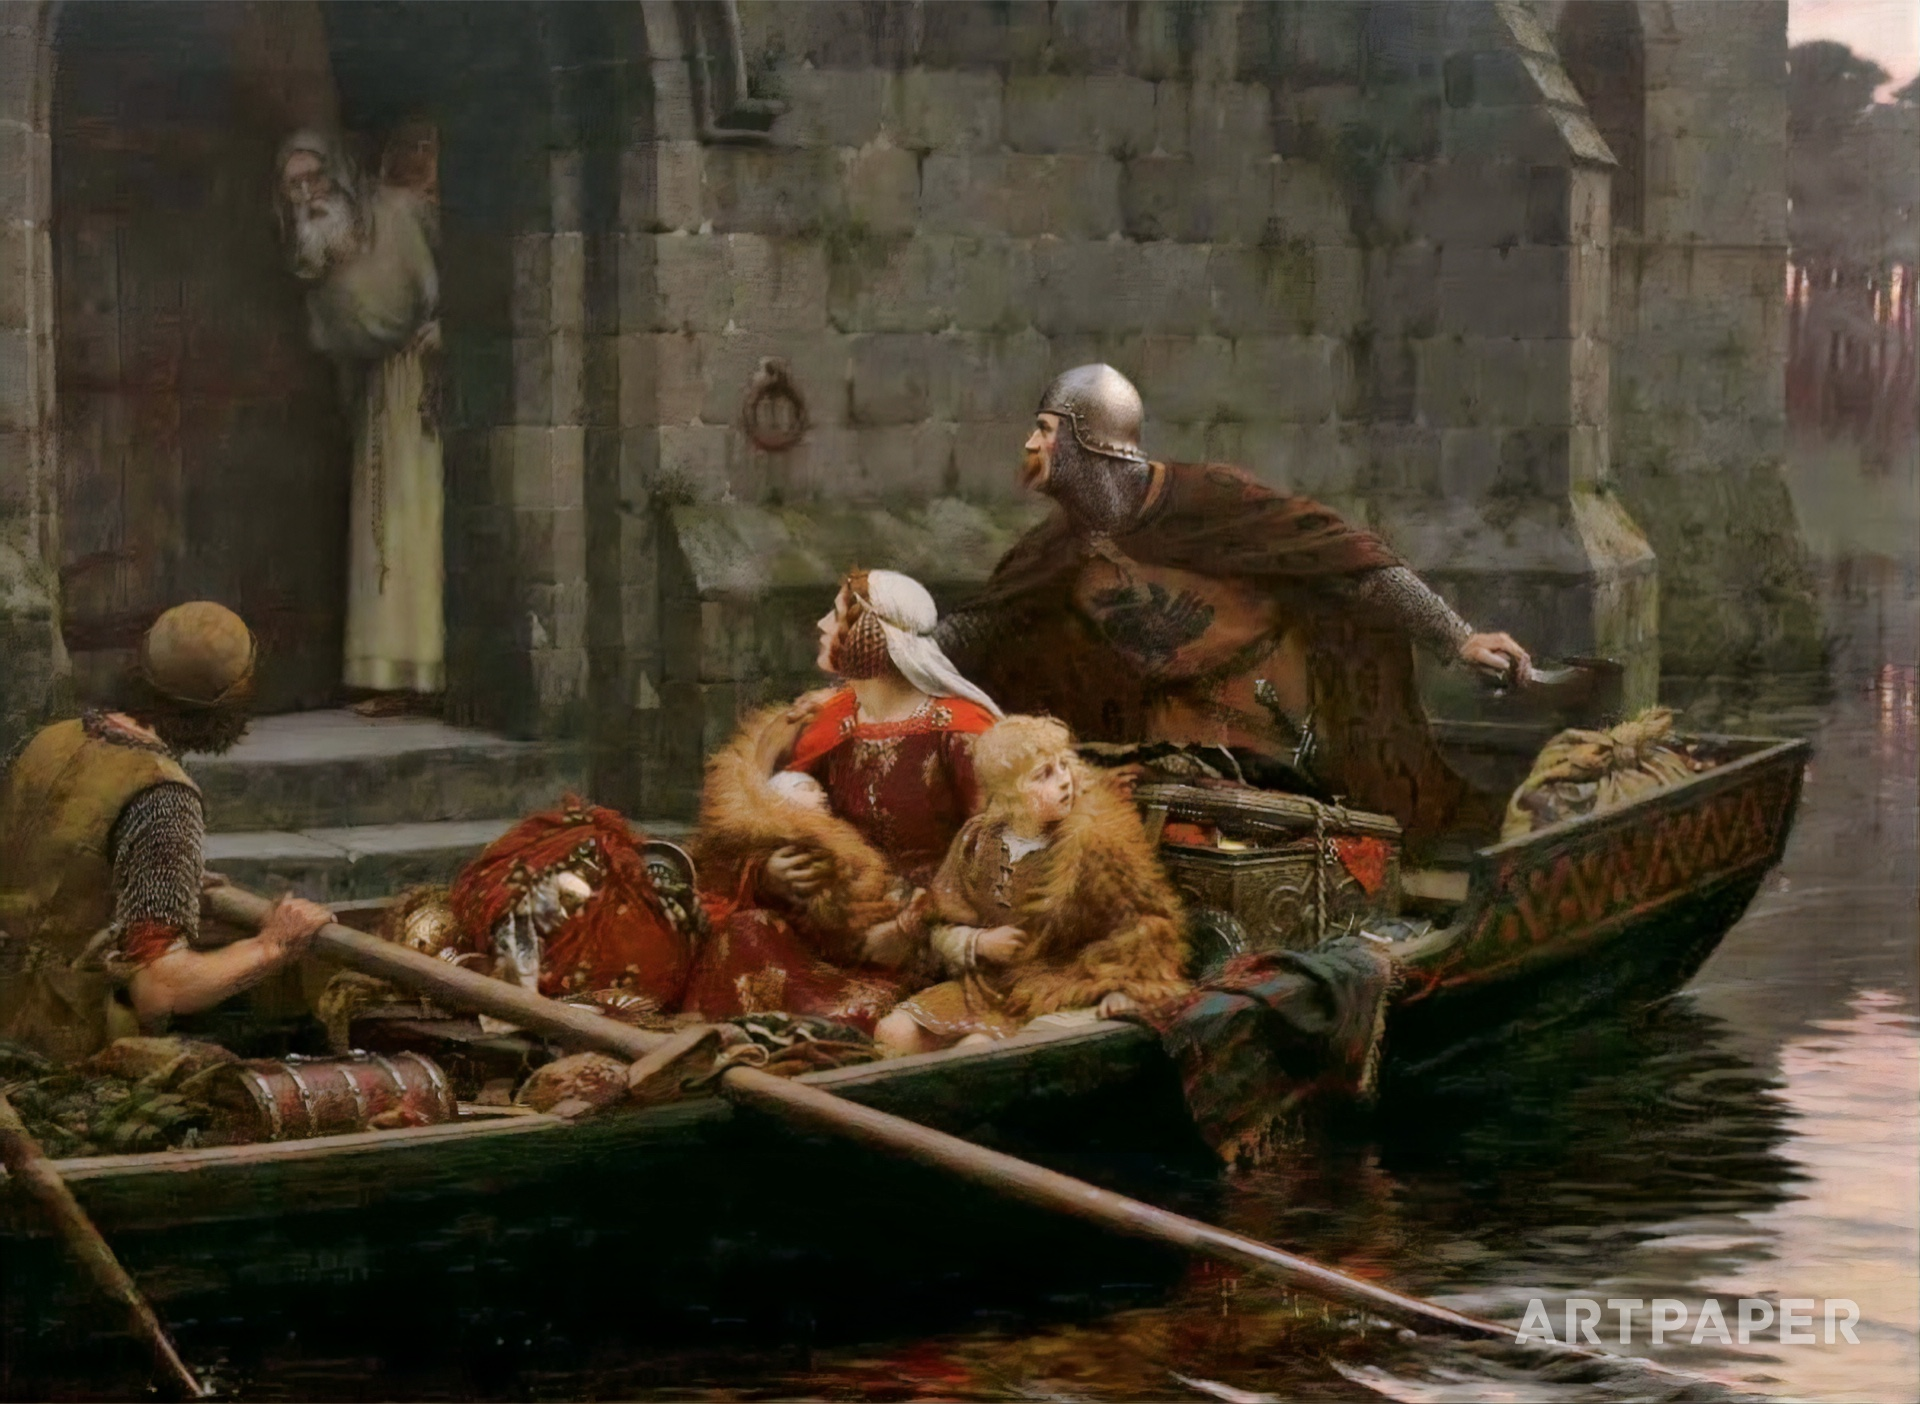 In Time of Peril by Edmund Blair Leighton | Artpaper